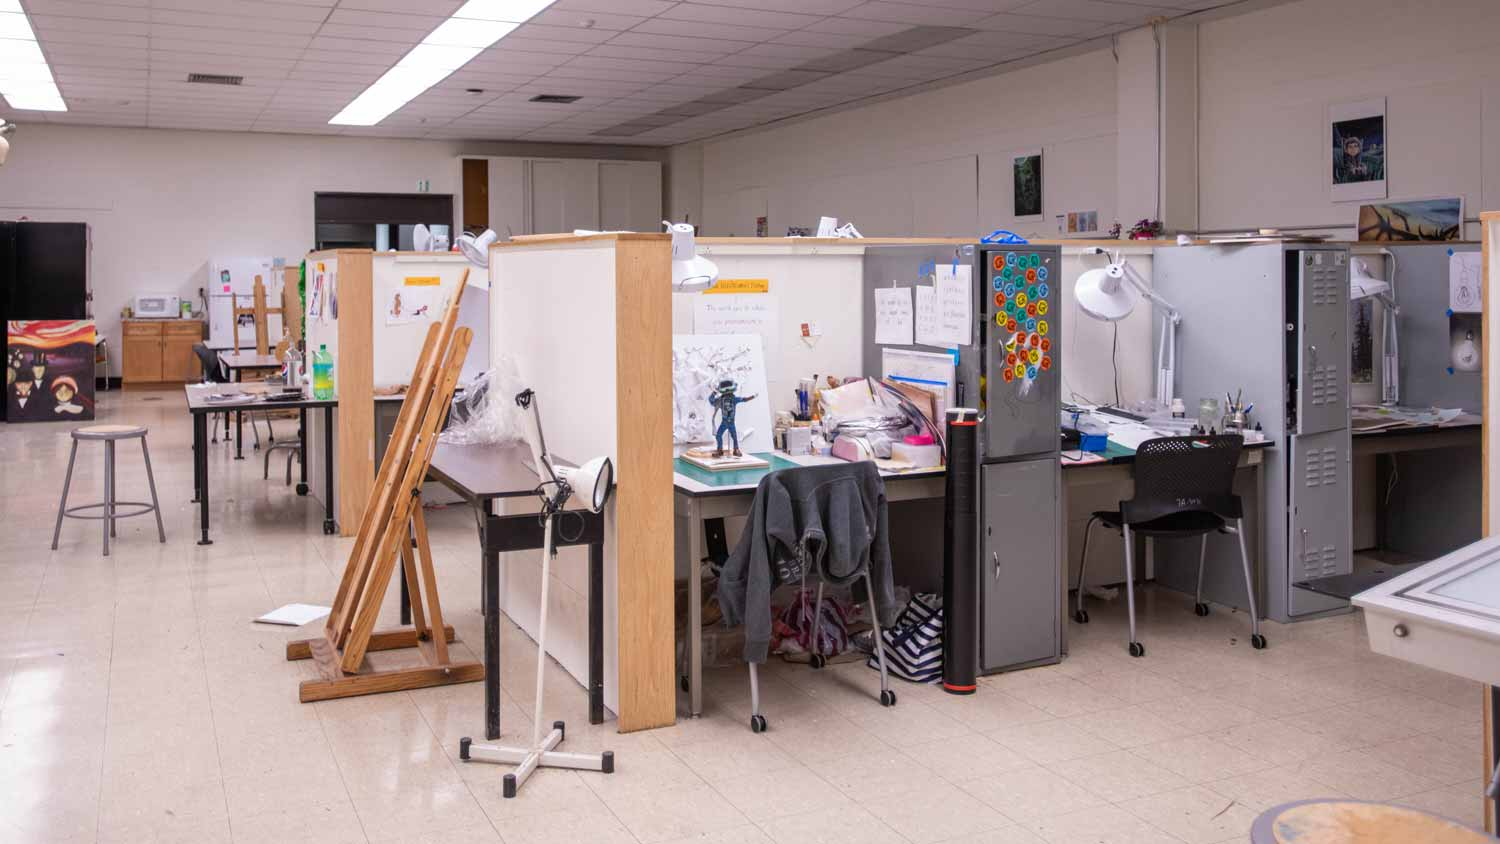 Cubicles with individual art stations